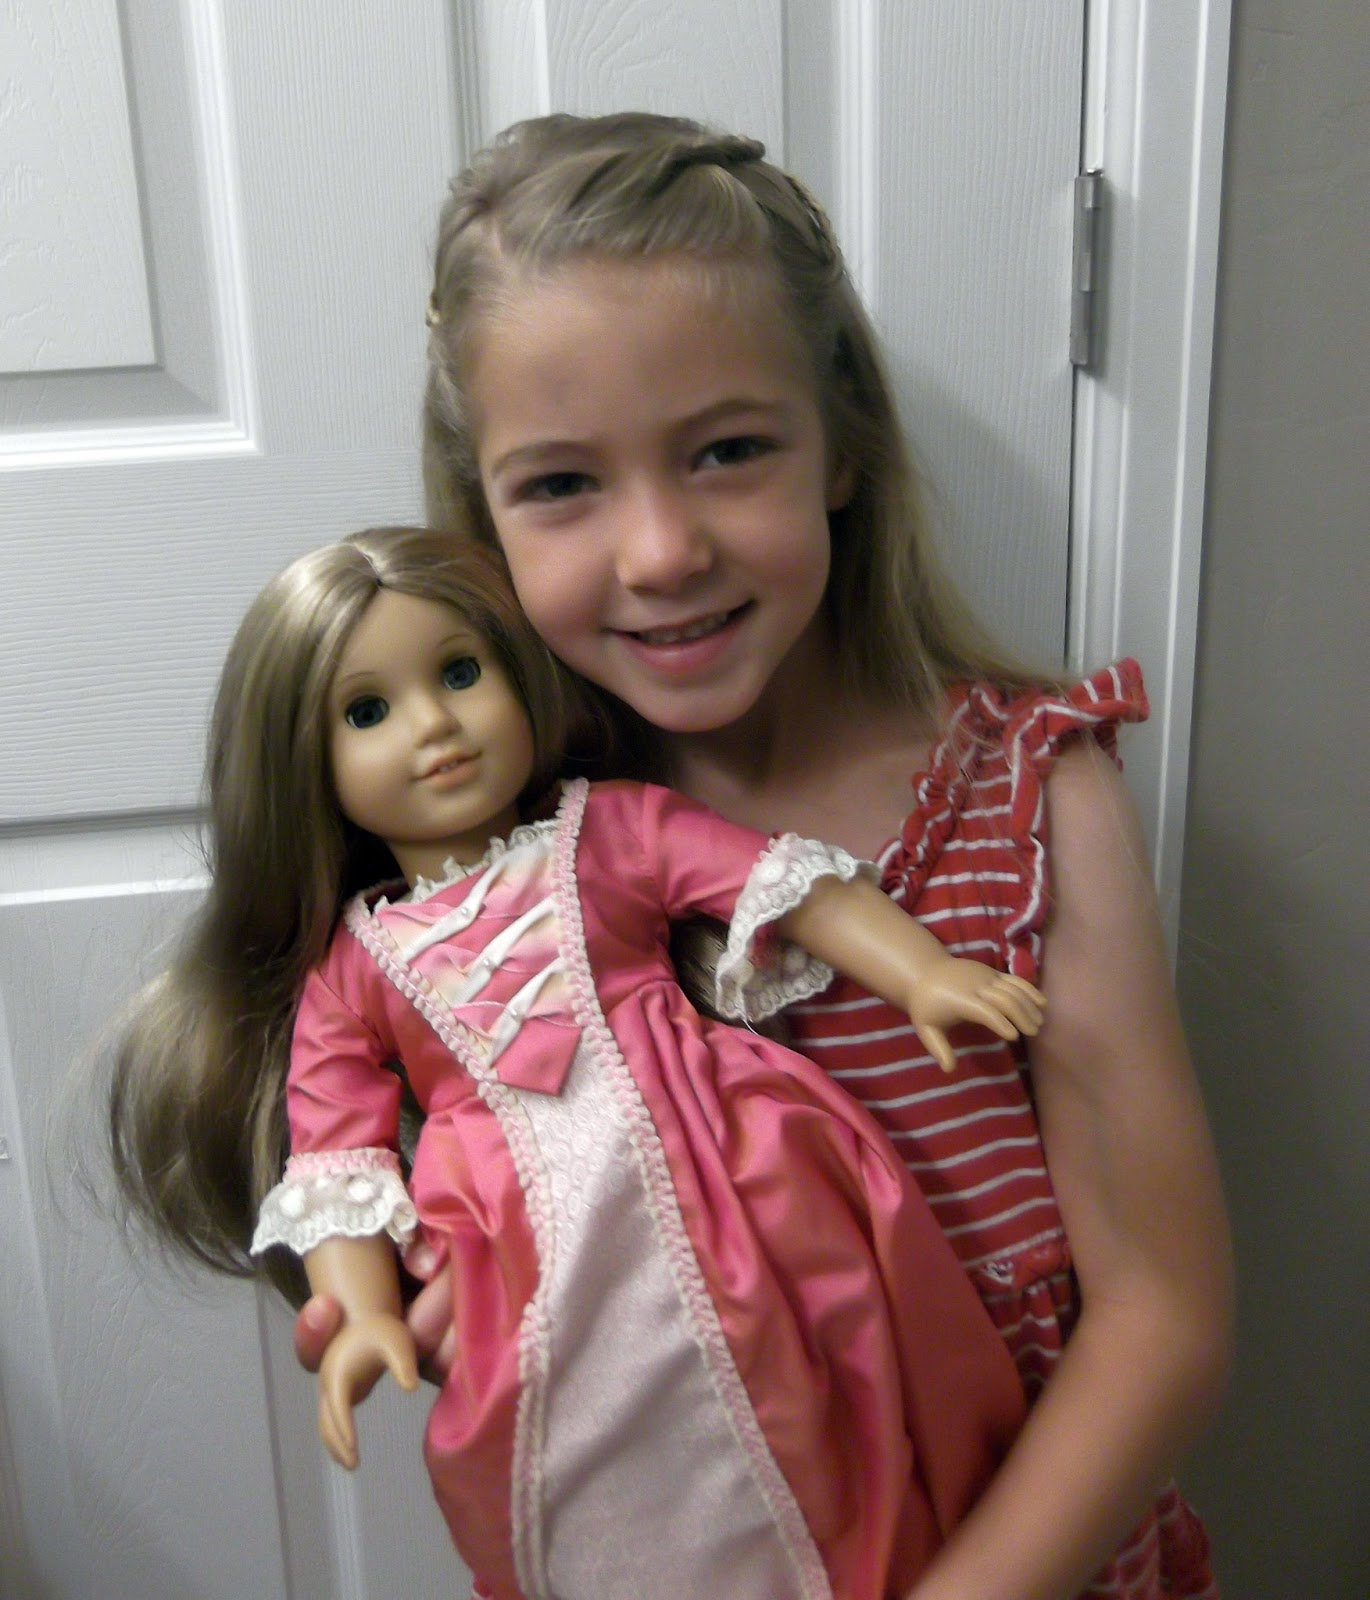 Little Girl Hairstyle Youtube: Little Girls' Hairstyles: How To Do An American Girl Doll